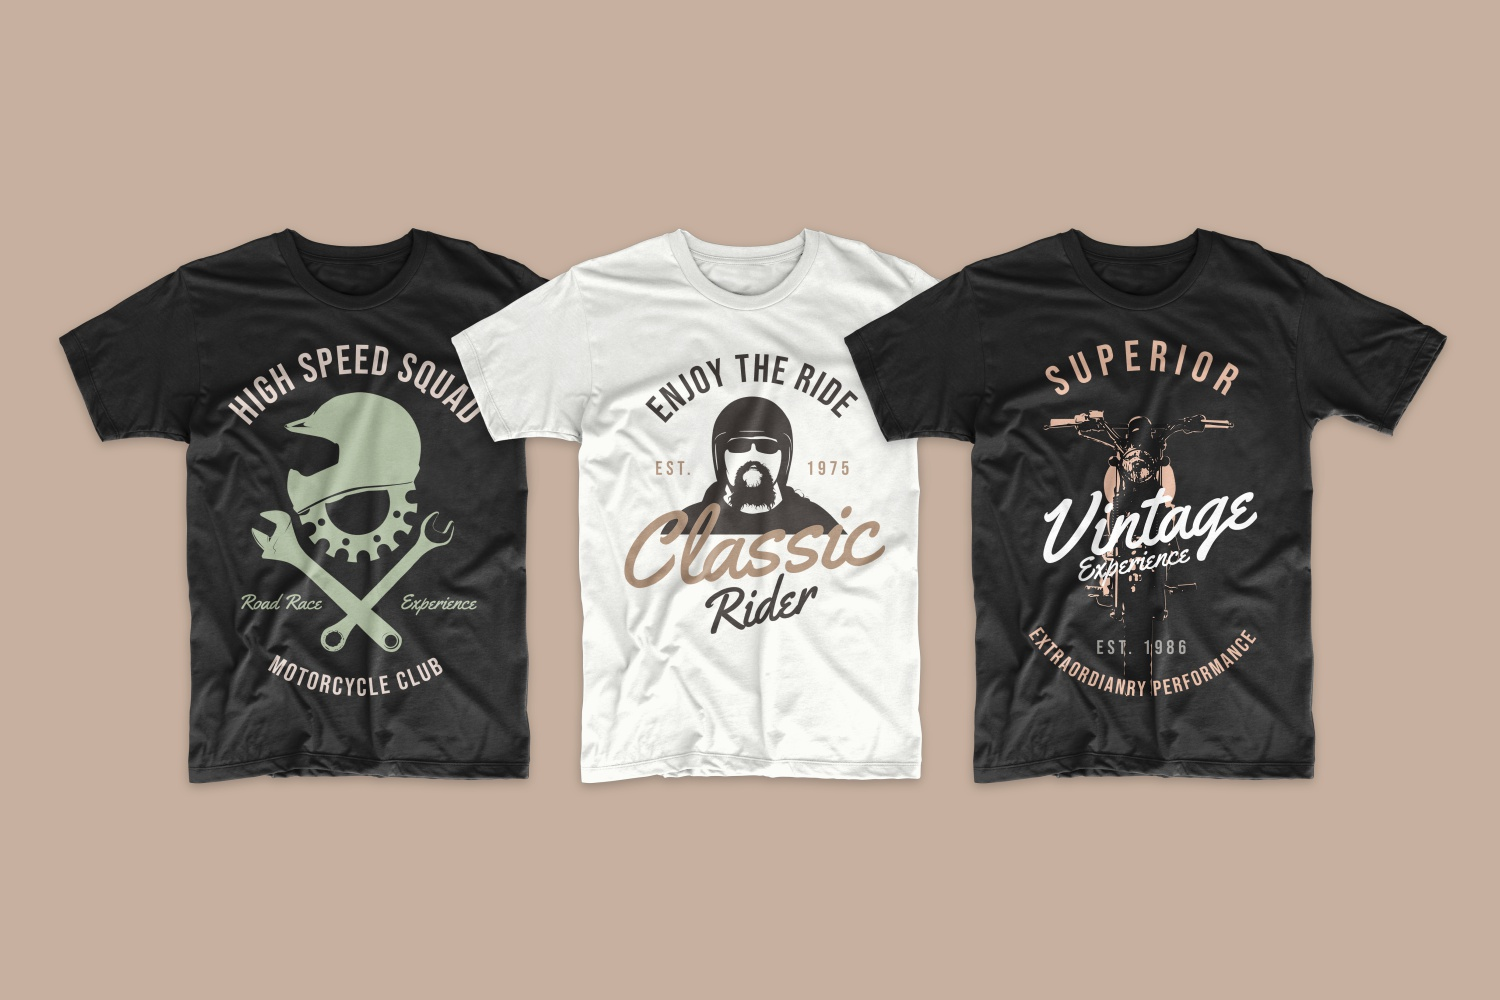 Vintage style T-shirts featuring a bearded motorcycle rider.